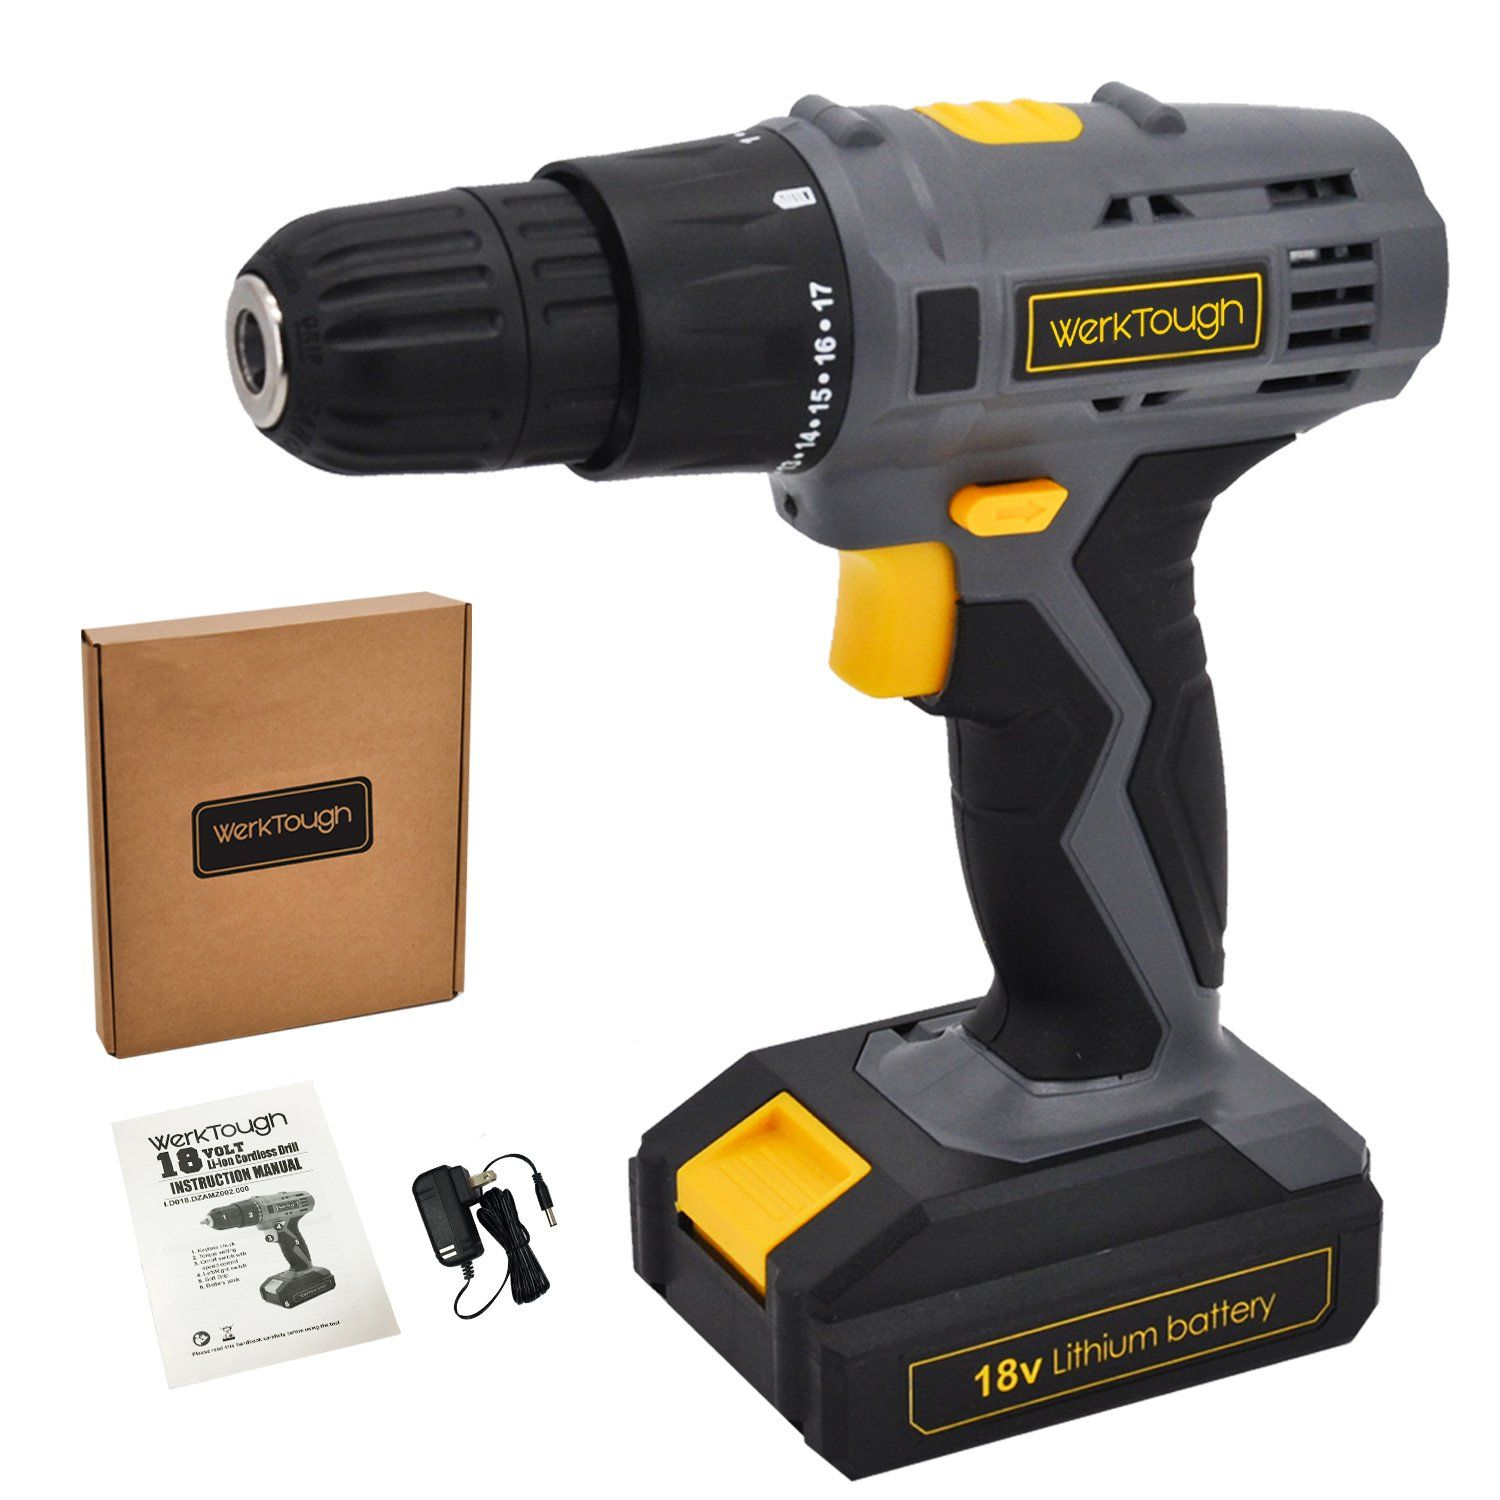 Werktough D018 18v Cordless Drill Driver Powerful Screwdriver Lion Battery With Charger Find Out More At The Photo W In 2020 Cordless Drill Drill 18v Cordless Drill